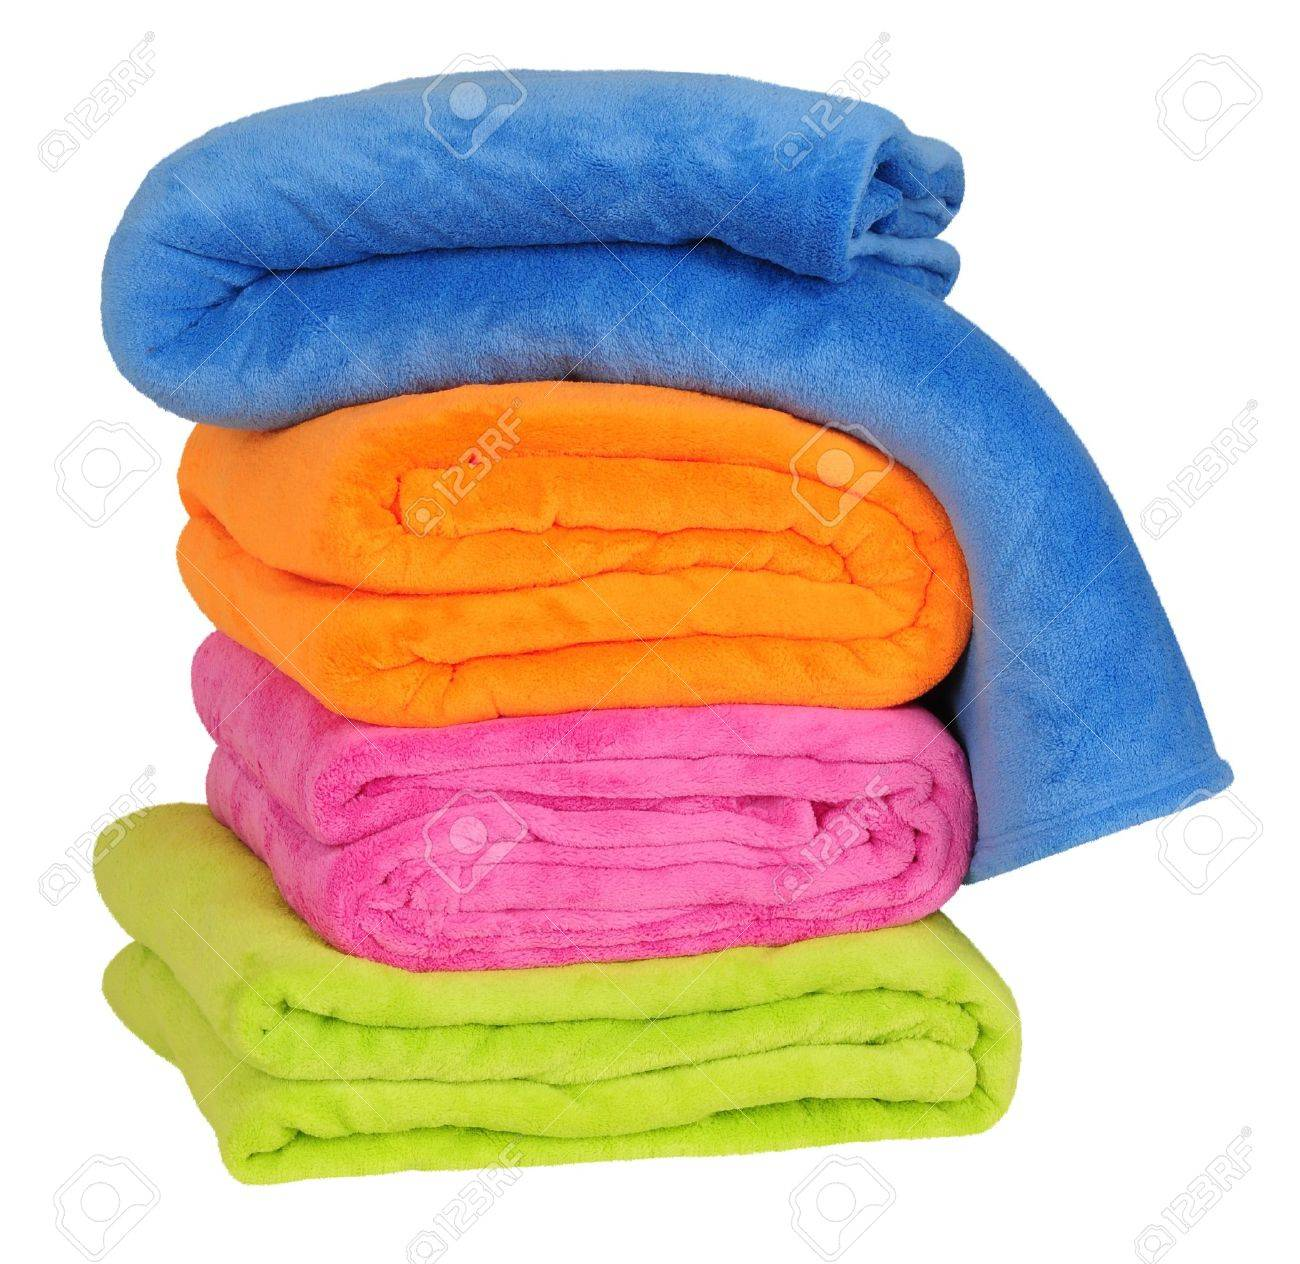 colorful blankets colorful blankets stock photo picture and  - colorful blankets stock photo picture and royalty free image